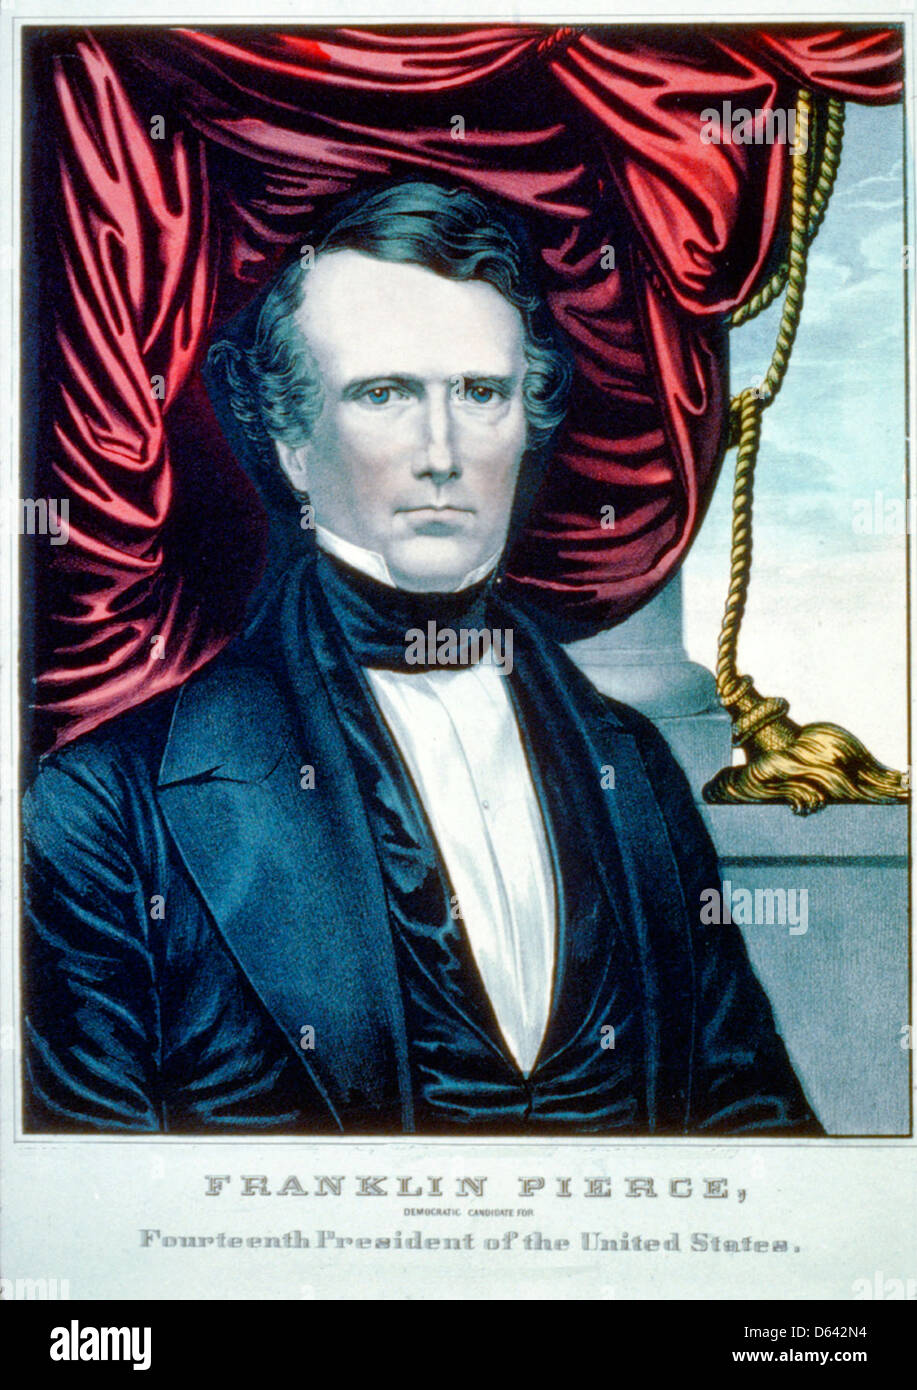 Franklin Pierce: Democratic candidate for fourtheenth president of the United States, Campaign Poster, circa 1852 - Stock Image